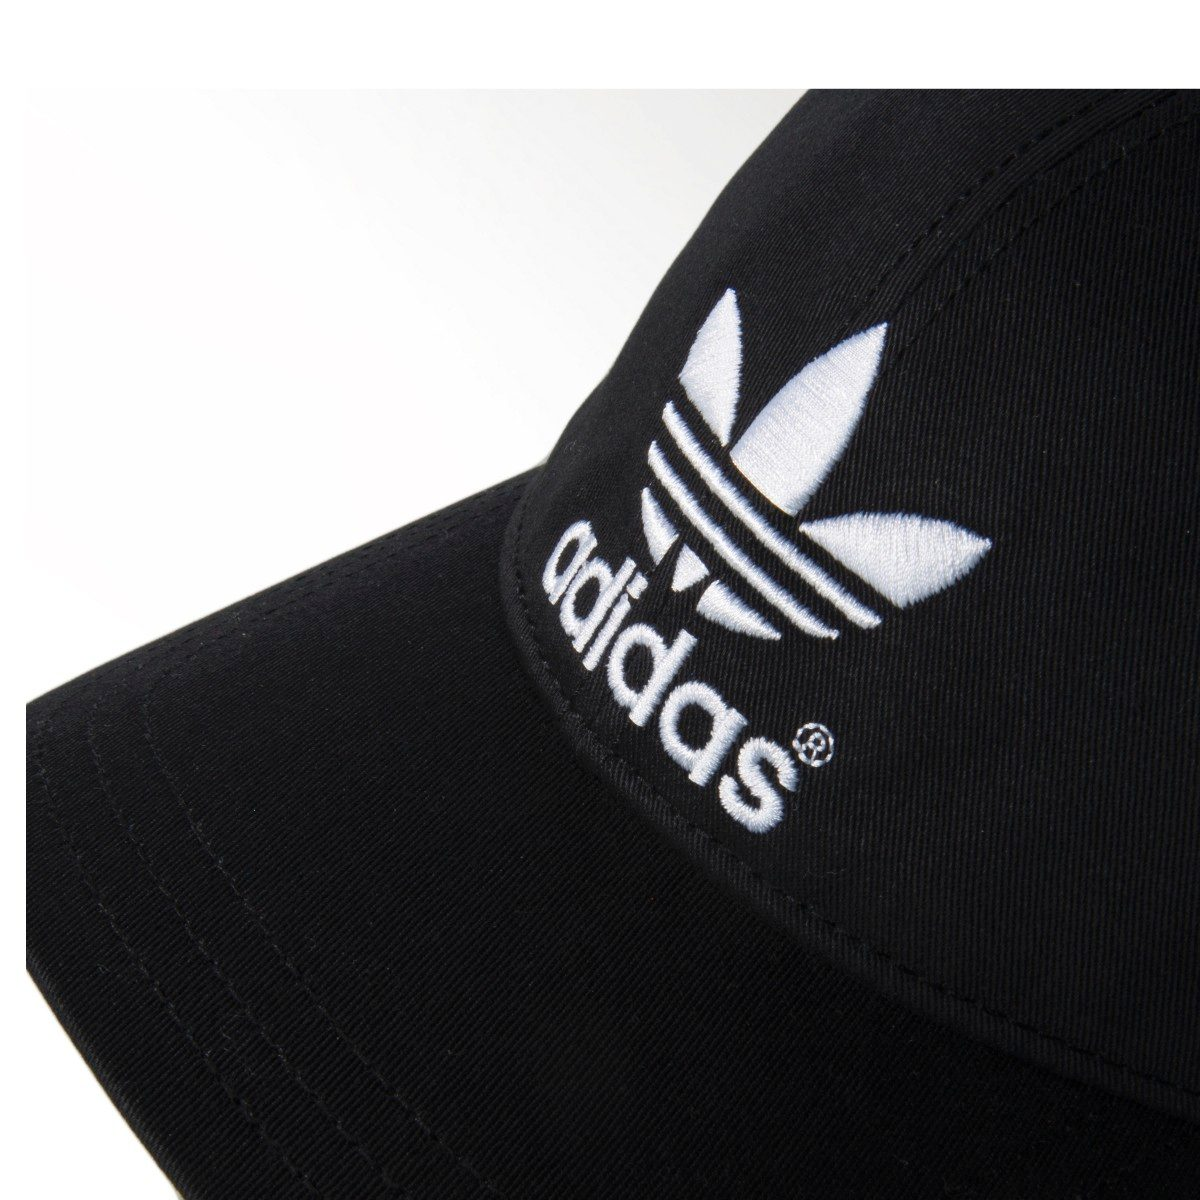 boné adidas originals - ac classic - preto - faith sports. Carregando zoom. e008c7b3017